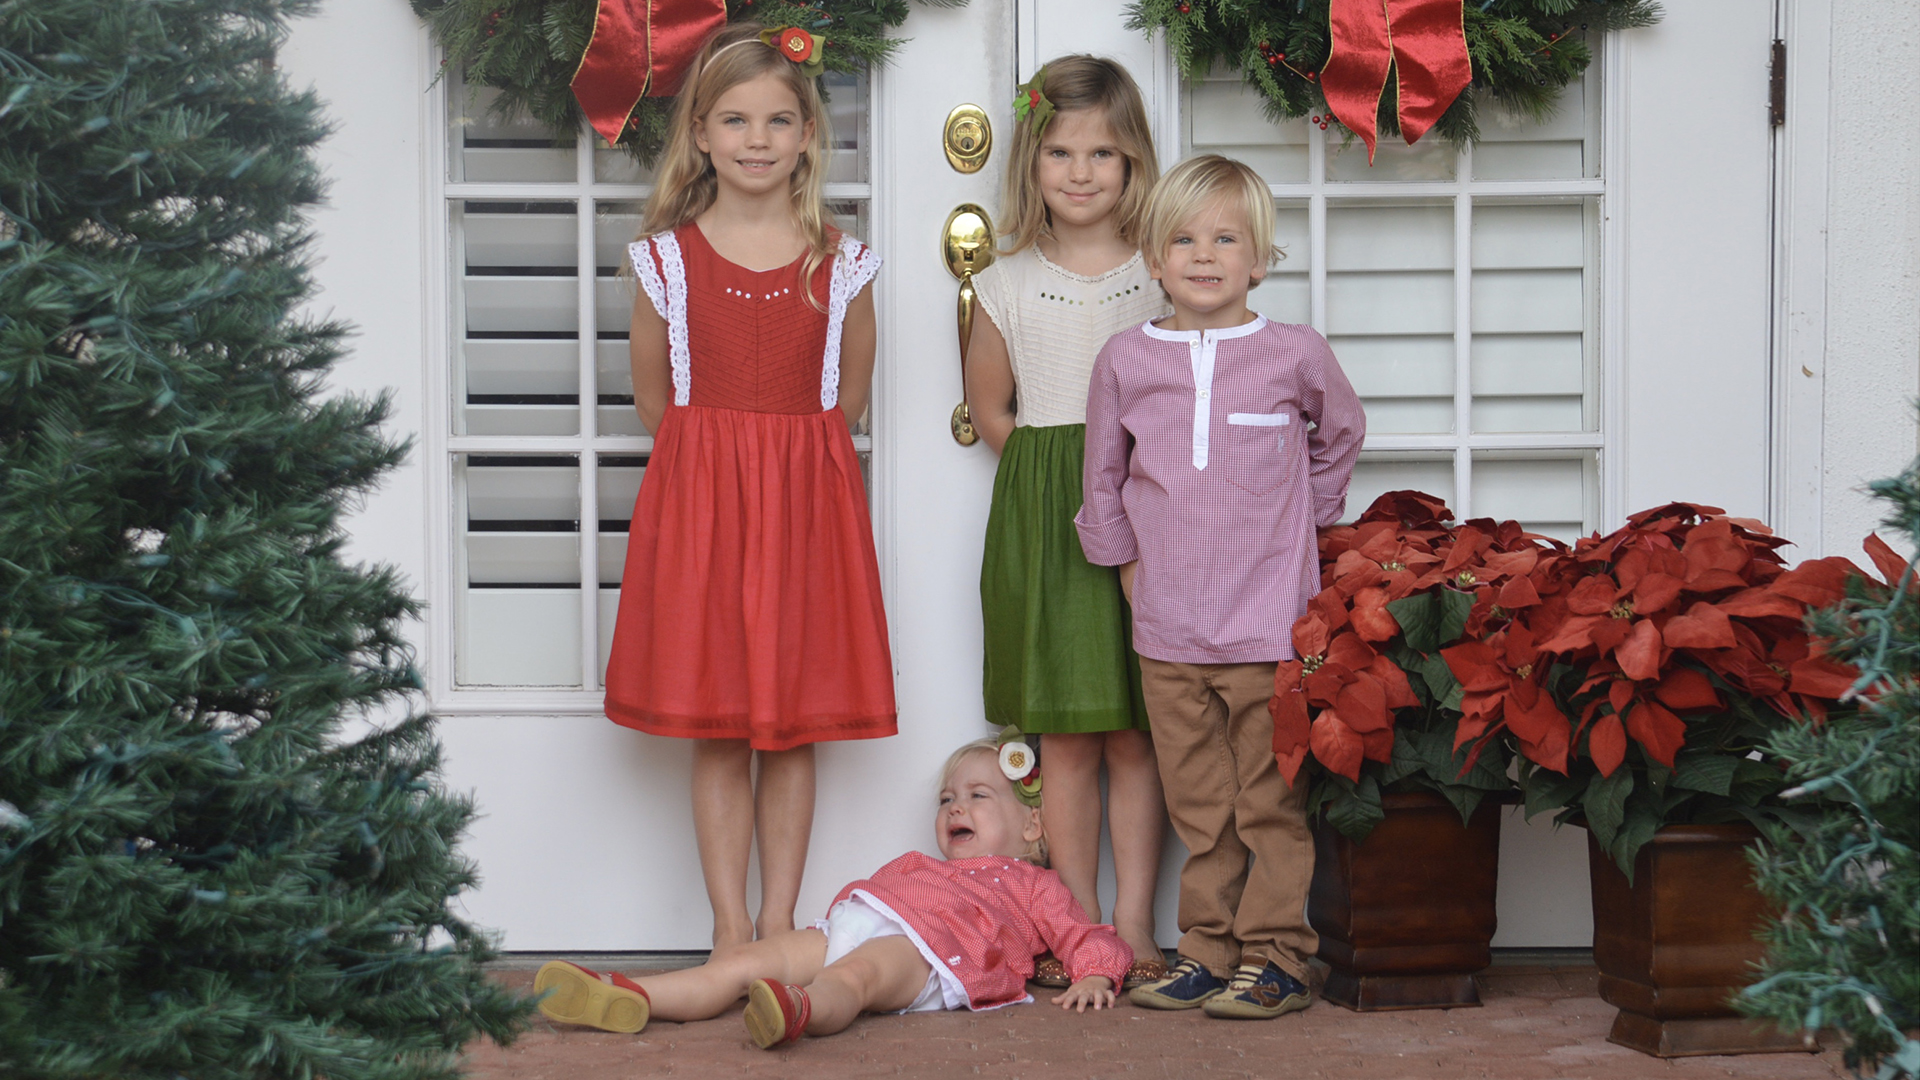 Holiday card photo fails that will make parents laugh